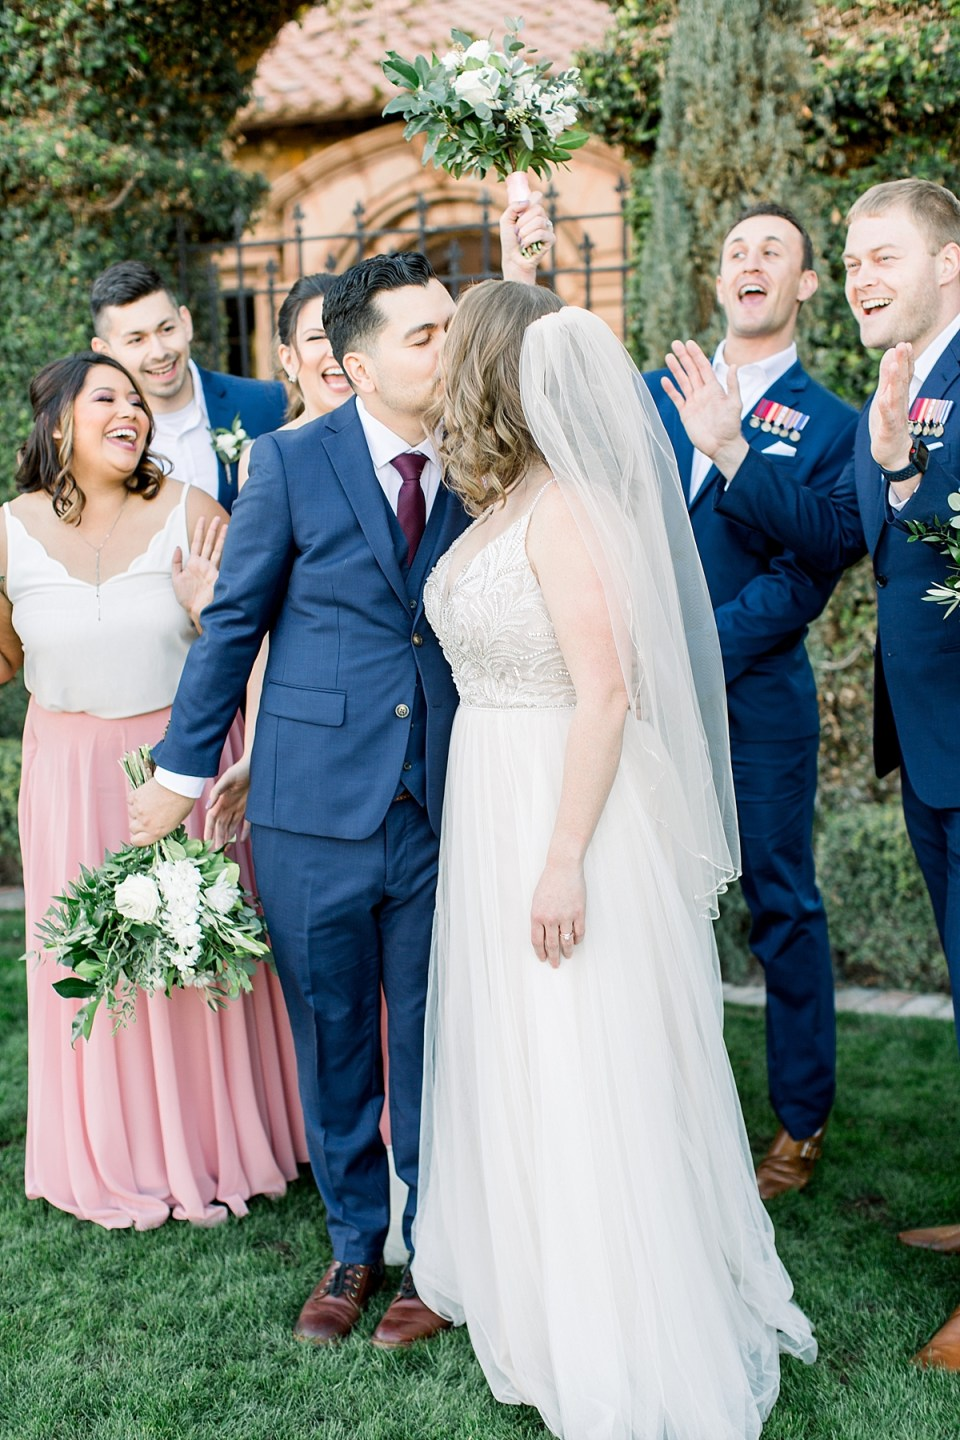 Villa Siena Wedding, Villa Siena Gilbert, Arizona Blush Wedding, Villa Siena Wedding Photographer, Phoenix Wedding Photographer, Villa Siena Bridal Party